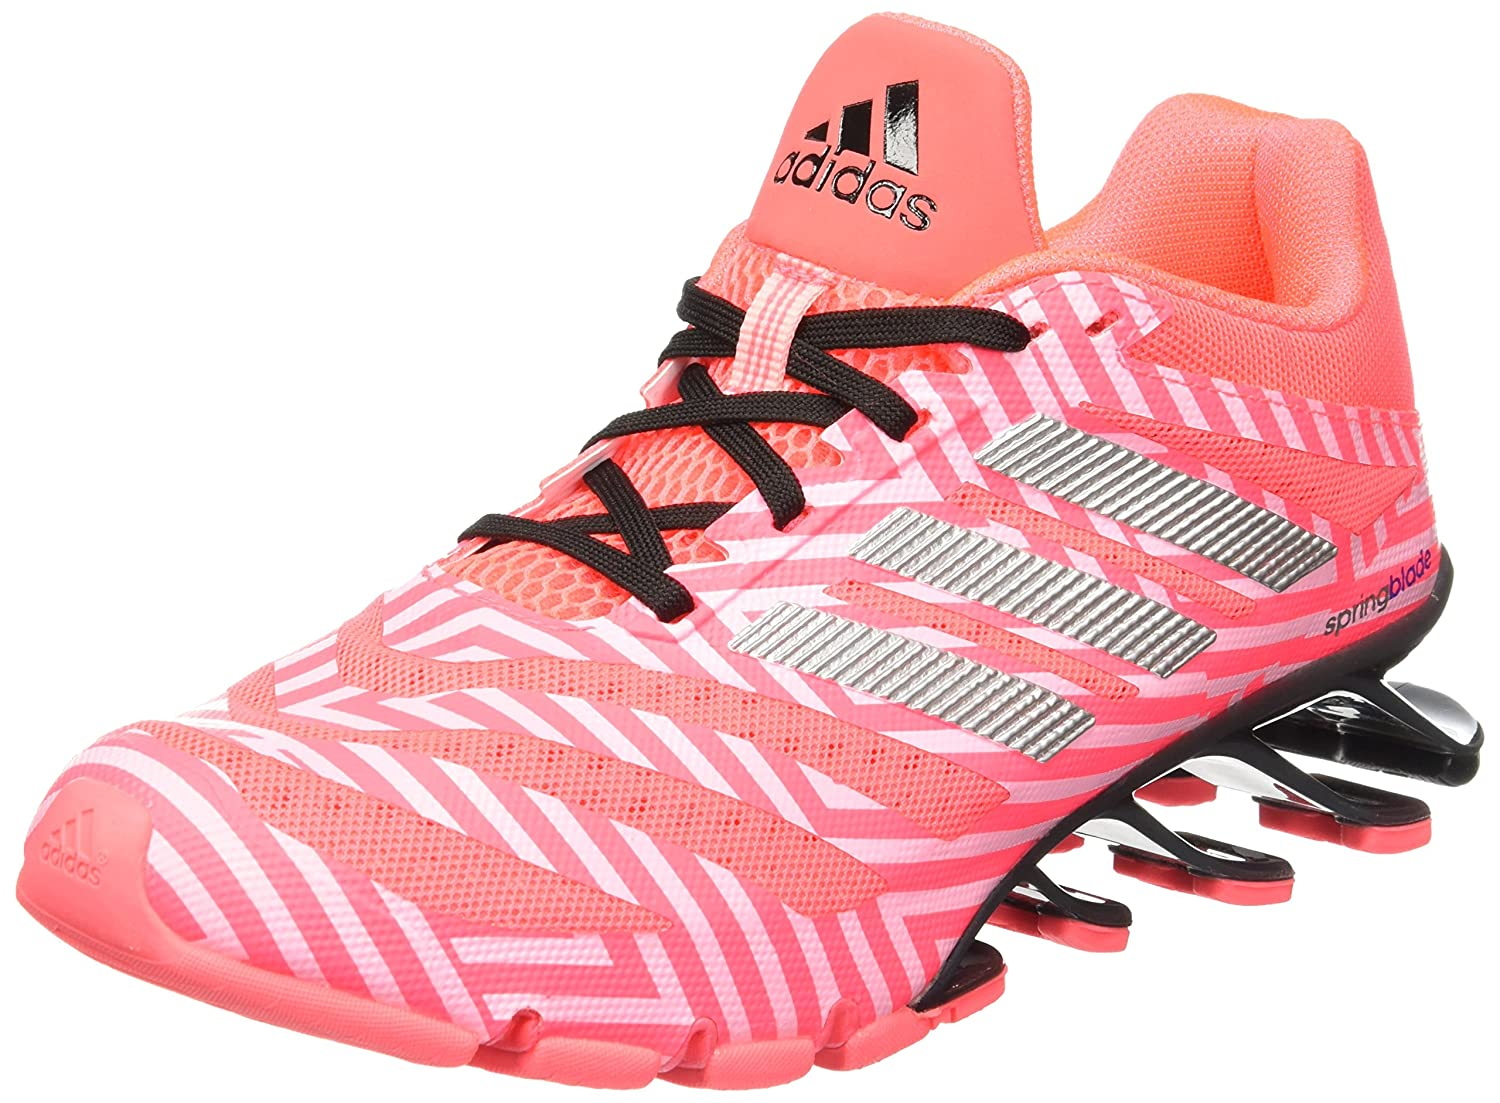 6ba88d630ab7 adidas Springblade Ignite Women s Running Shoes Pink  Amazon.co.uk  Shoes    Bags